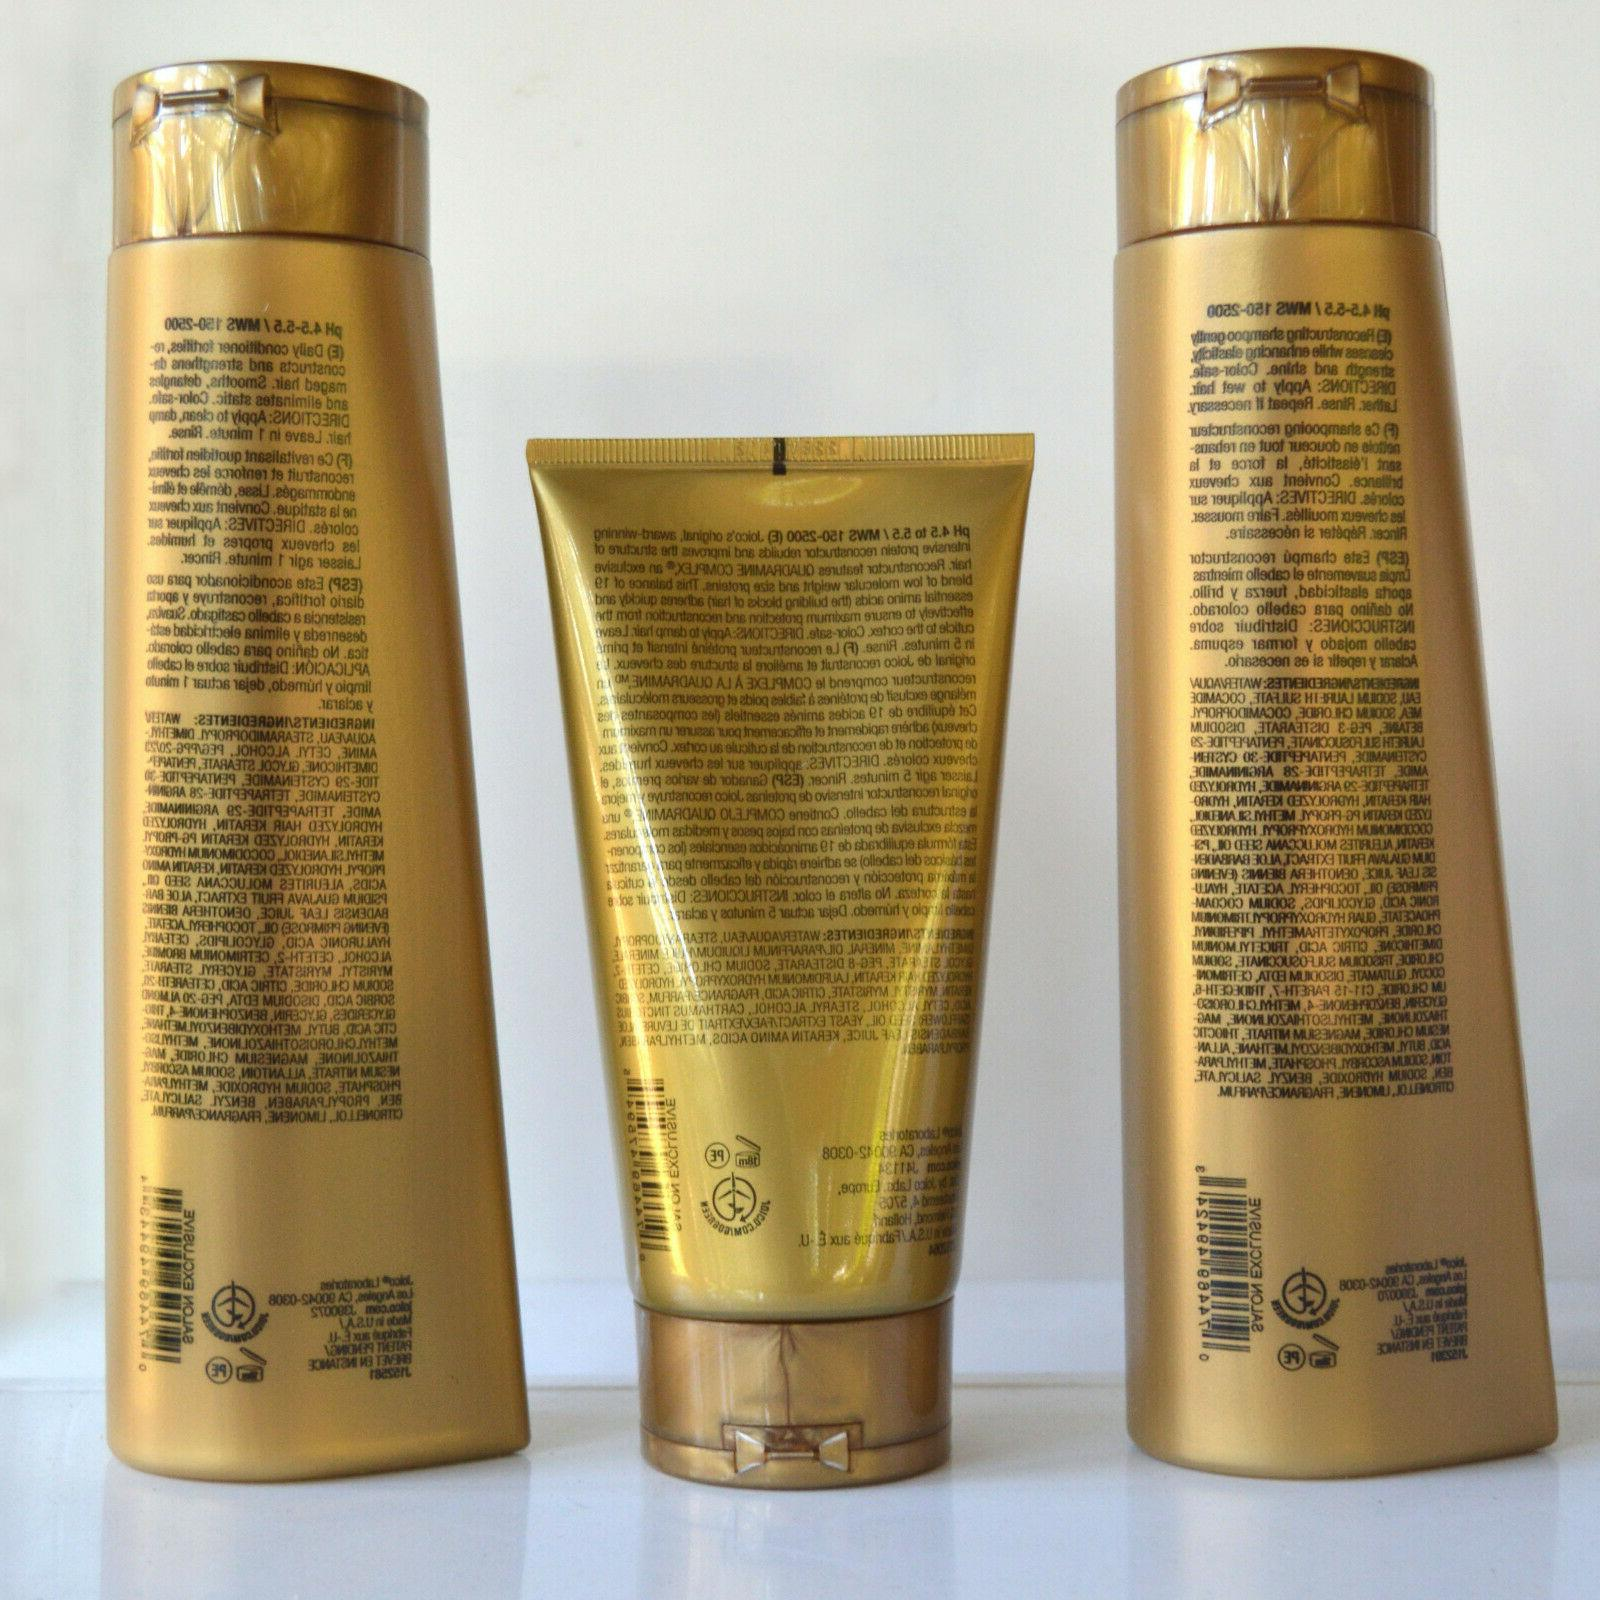 JOICO CONDITIONER FOR DEEP-PENETRATING